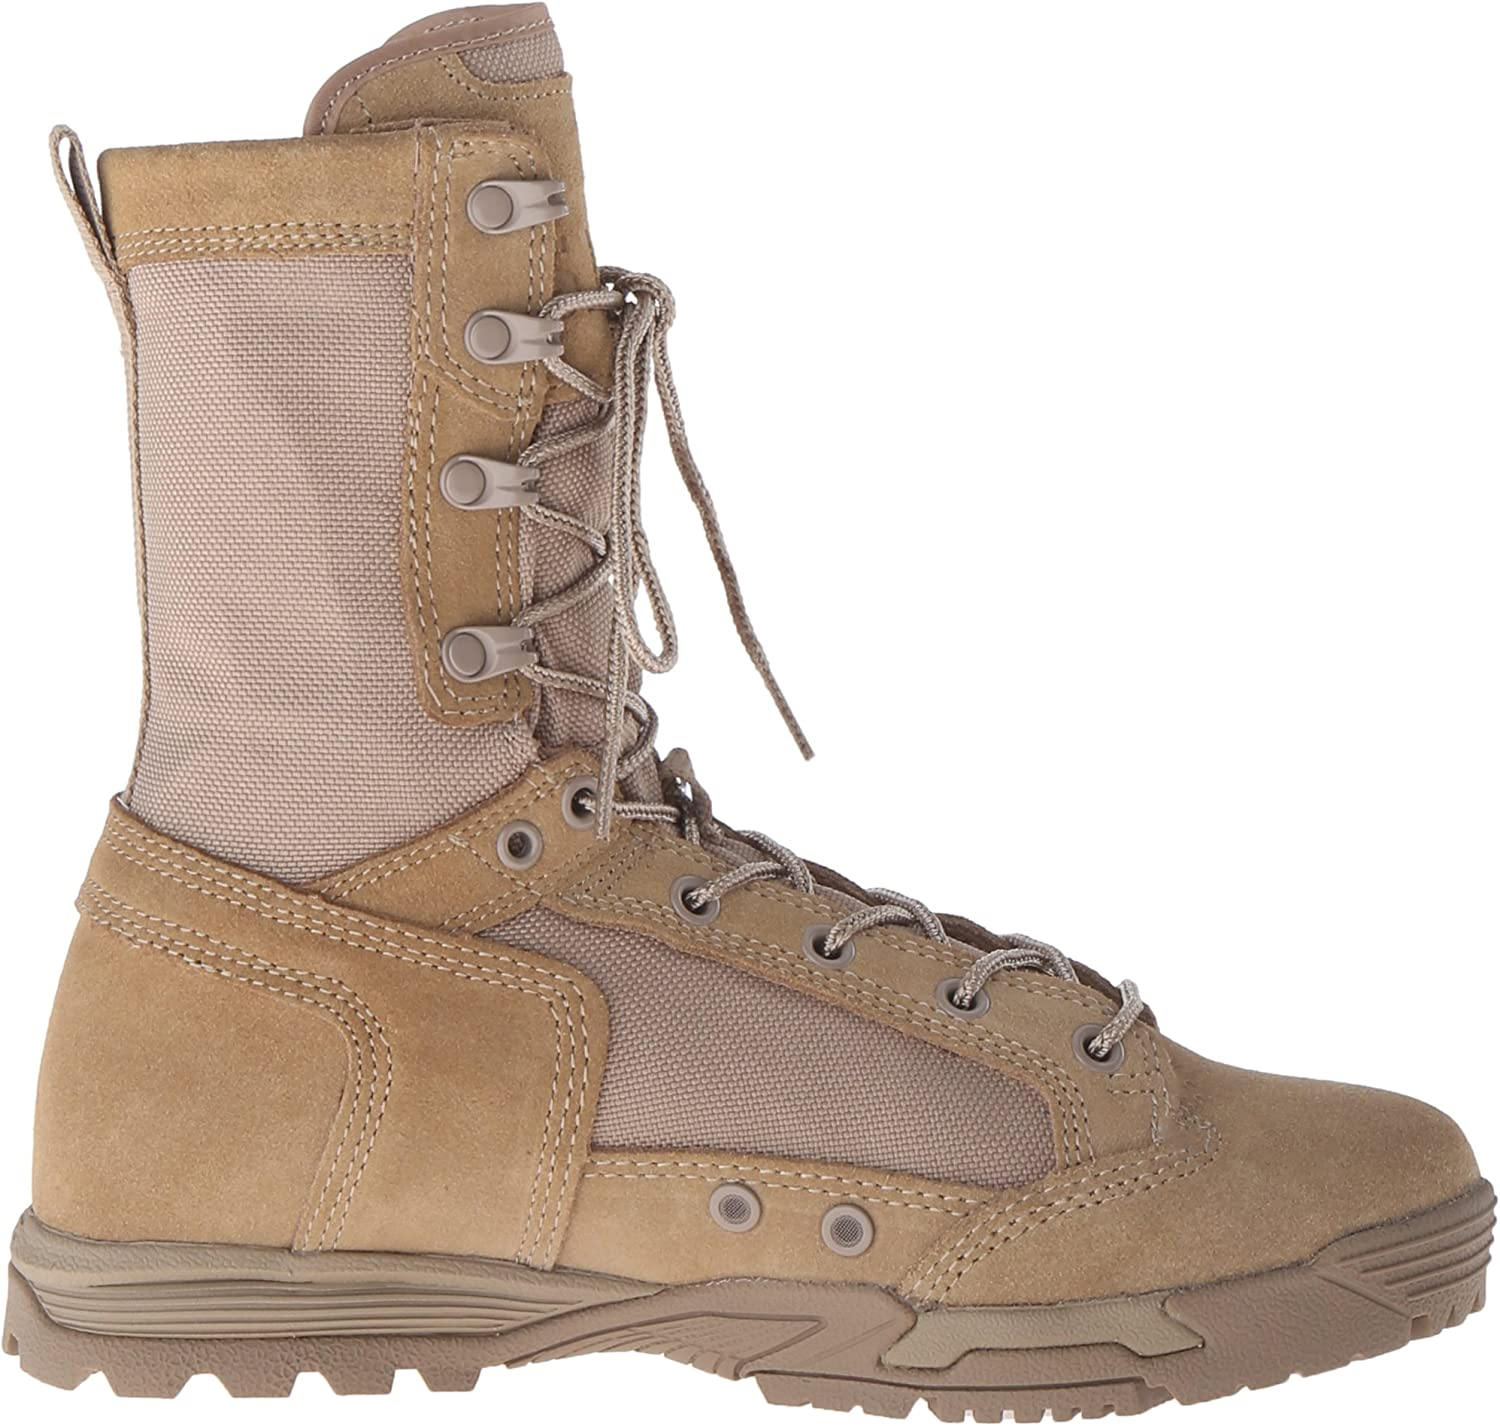 Style 12318 5.11 Tactical Mens Skyweight Side Zip Boot 100/% Full Grain Leather Ortholite Insole